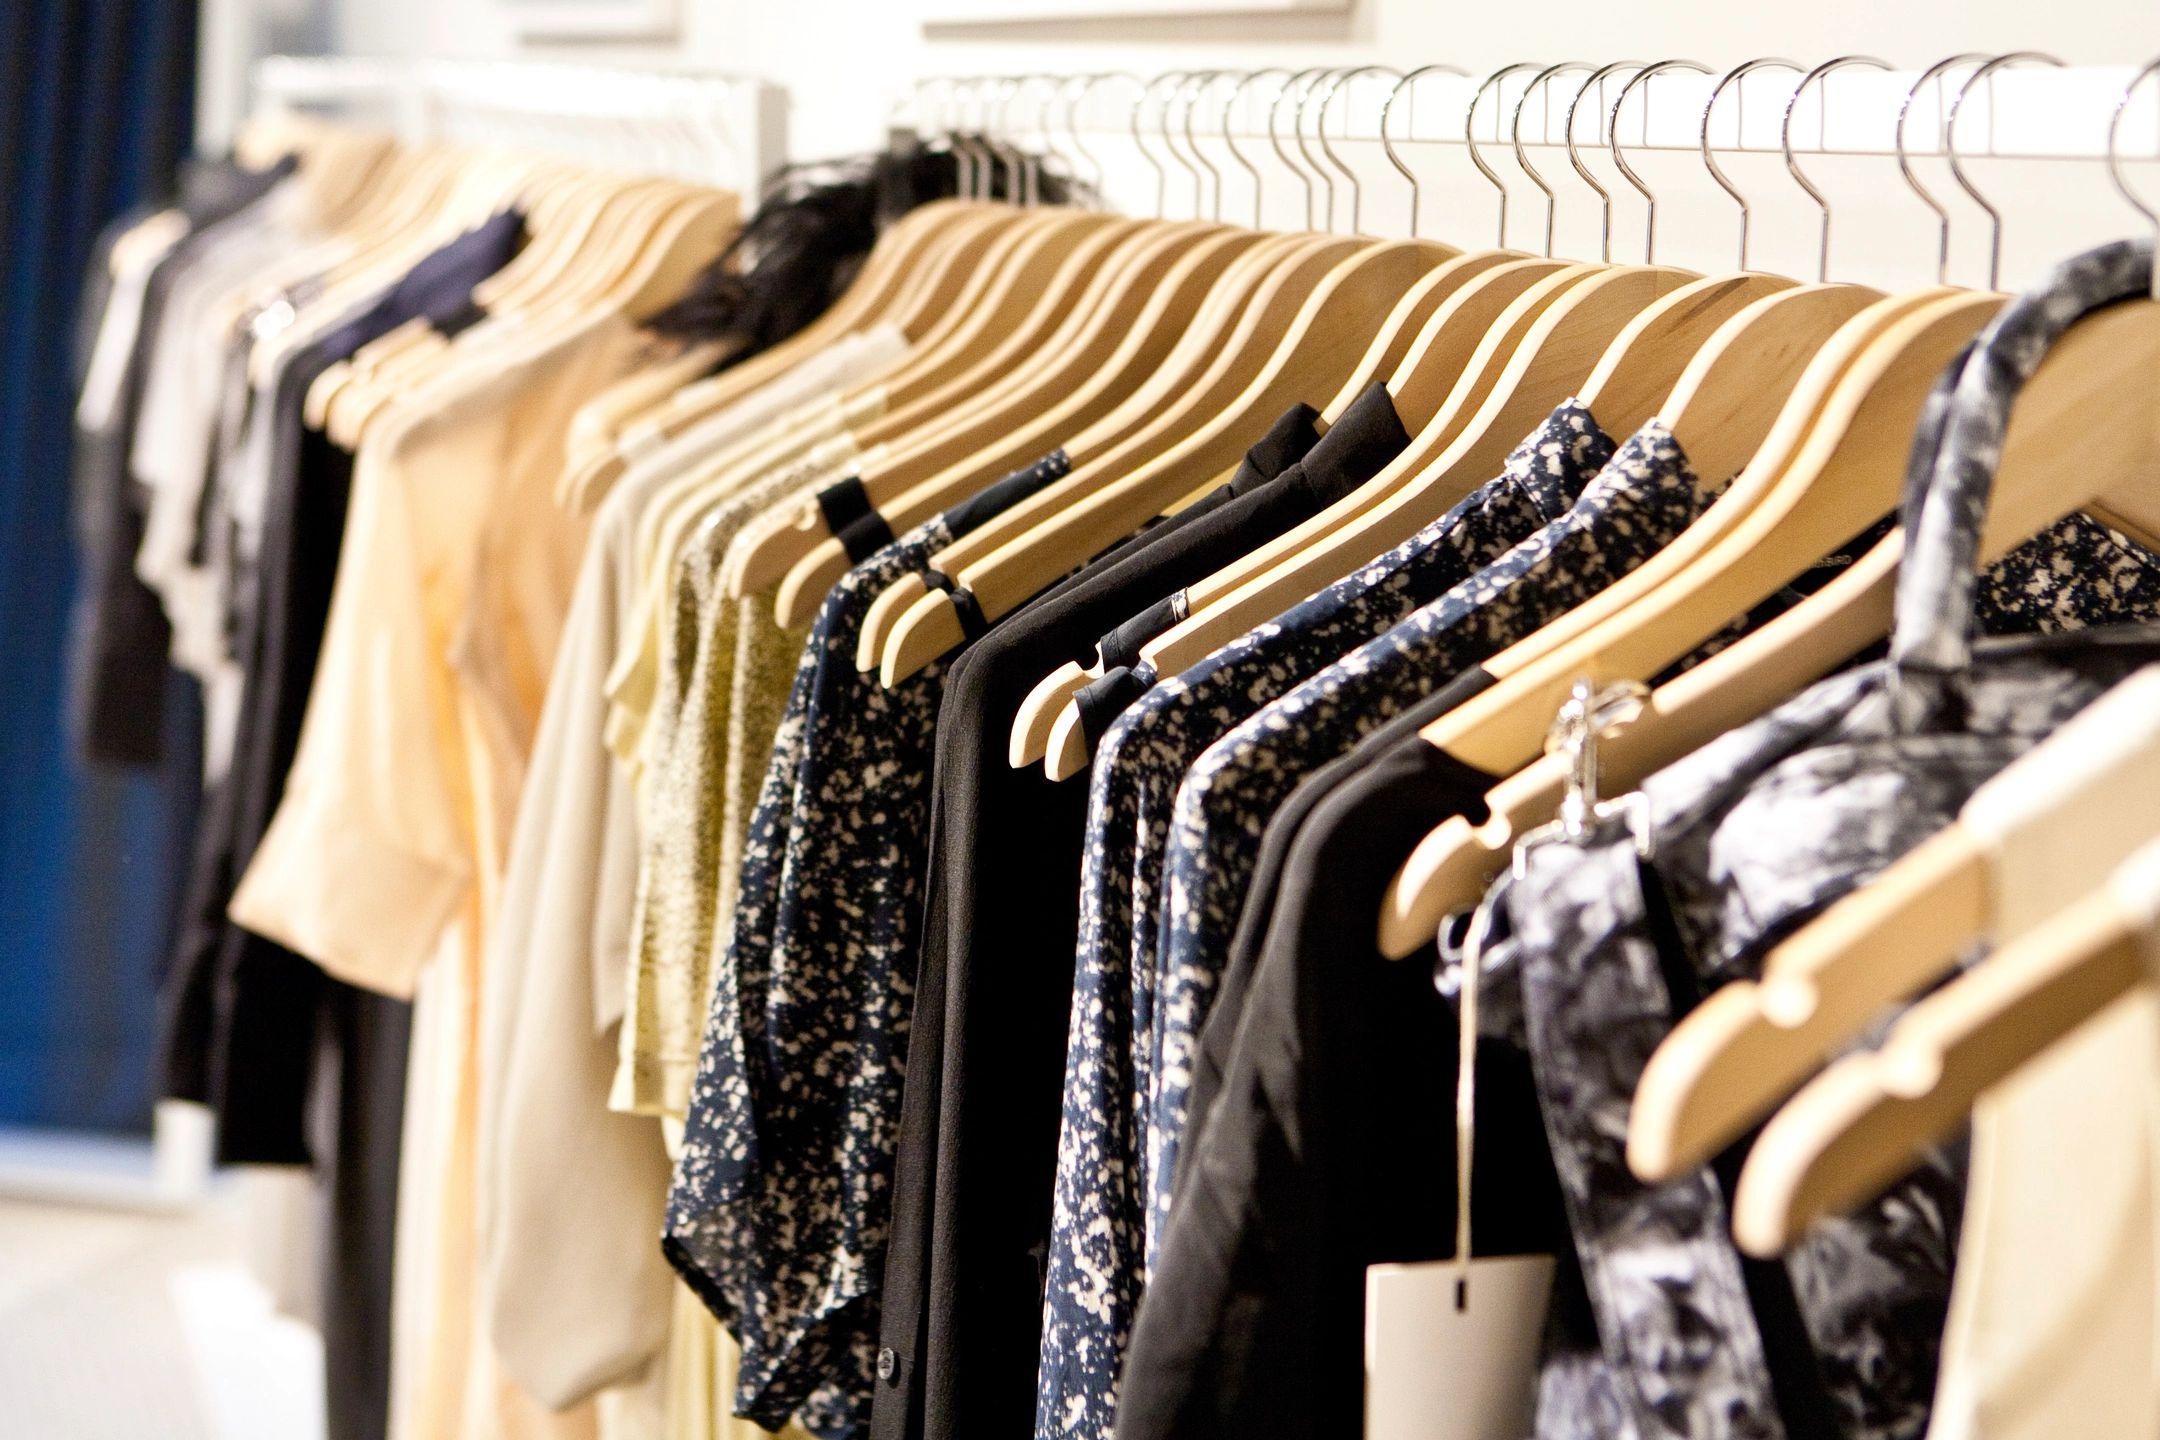 HOW TO CATALOGUE YOUR CLOSET